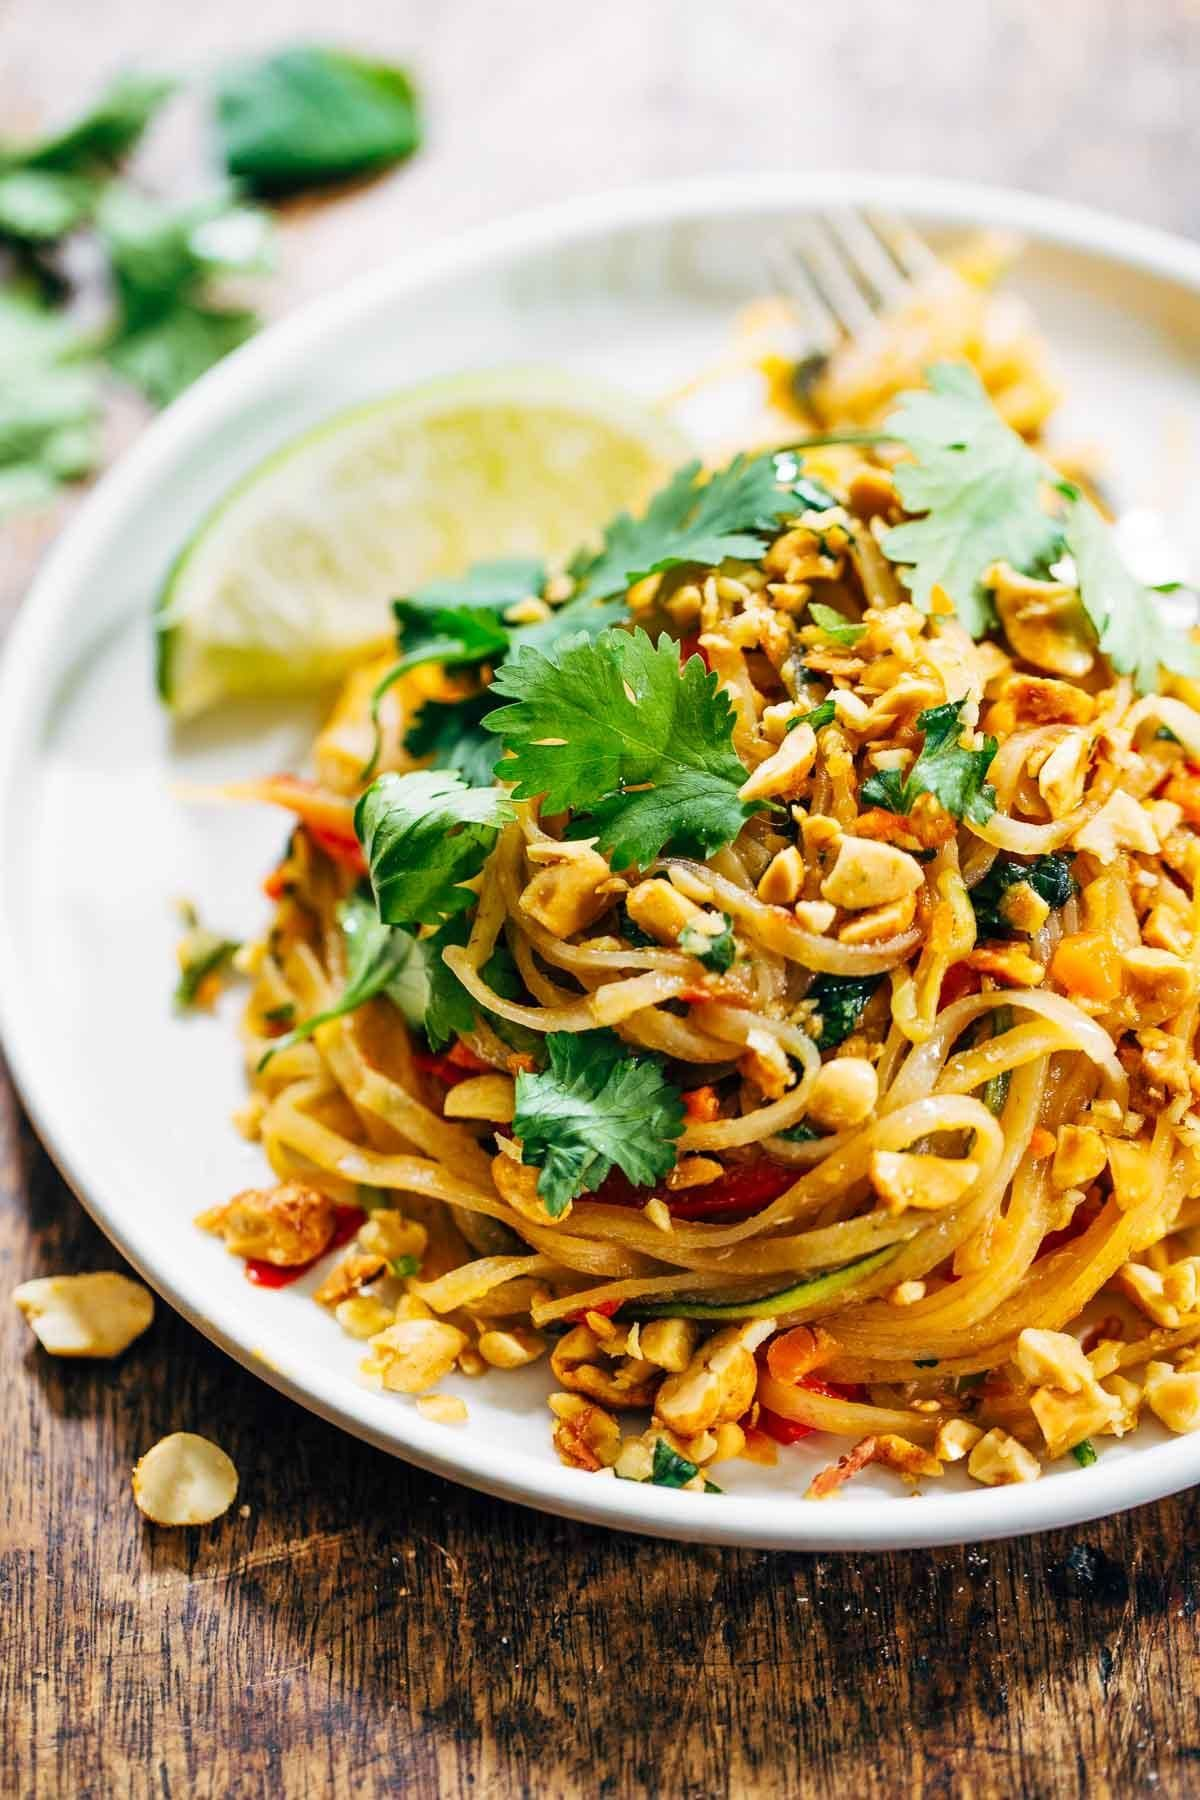 Vegetarian Pad Thai with Peanuts and Basil Rainbow Vegetarian Pad Thai recipeRainbow Vegetarian Pad Thai recipe